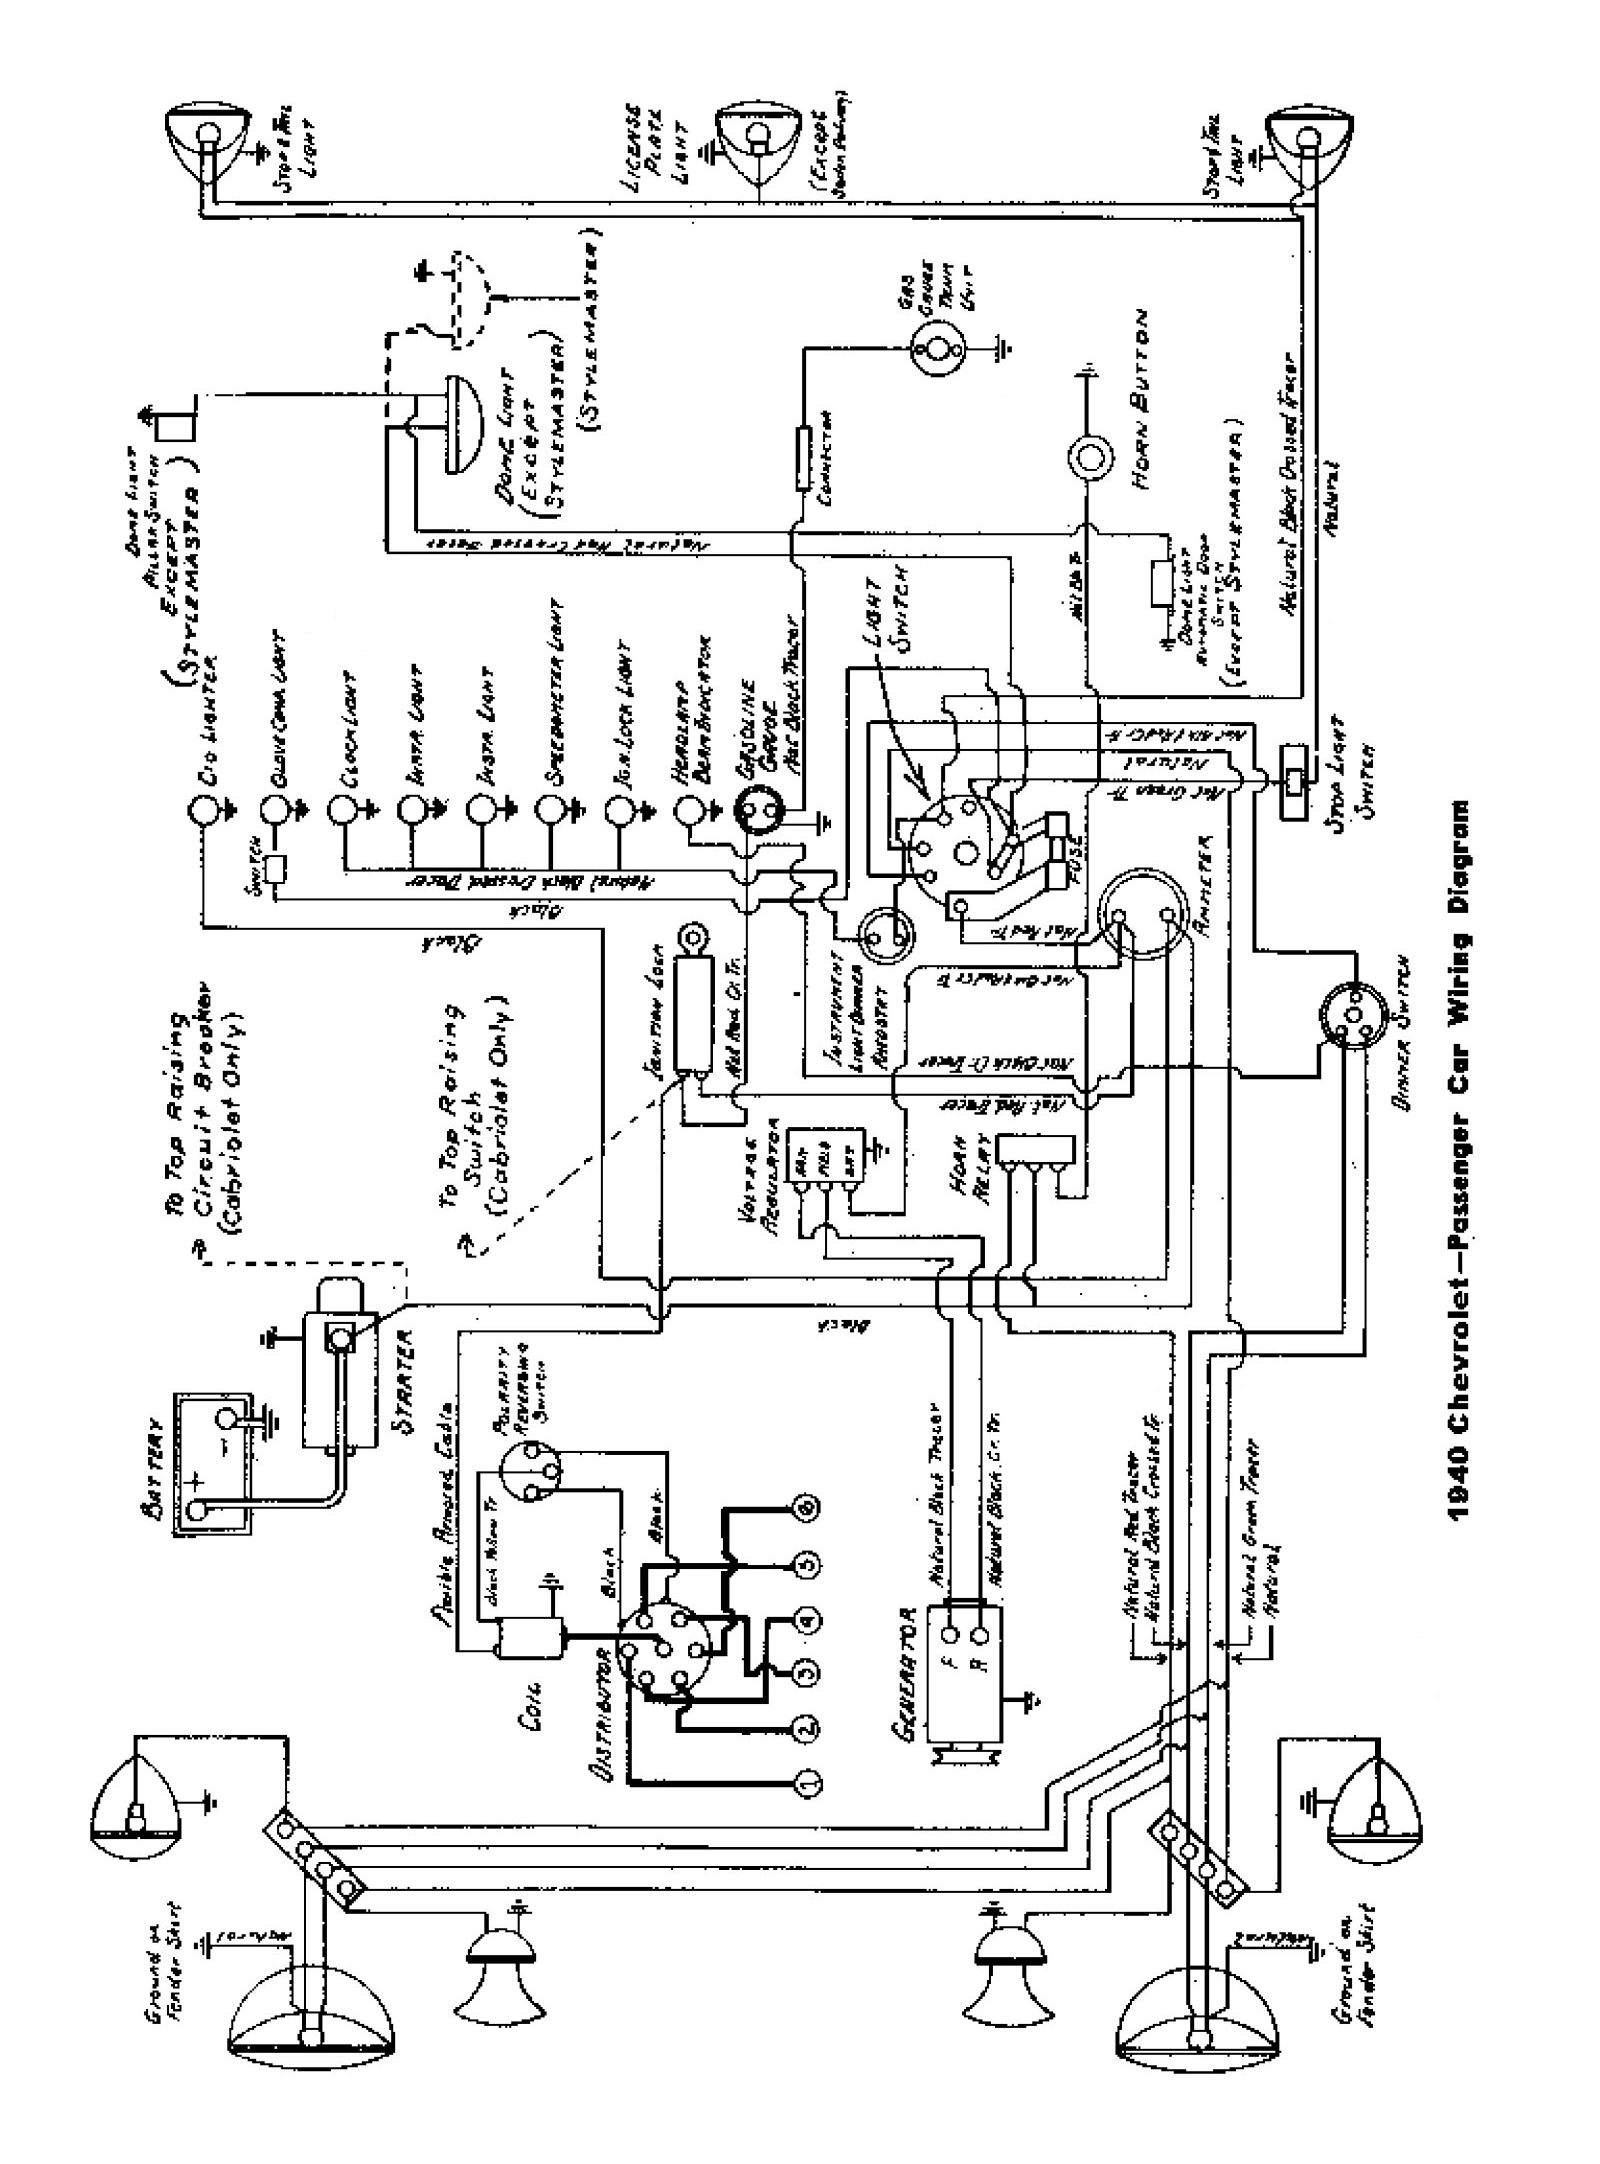 ikon wiring diagram